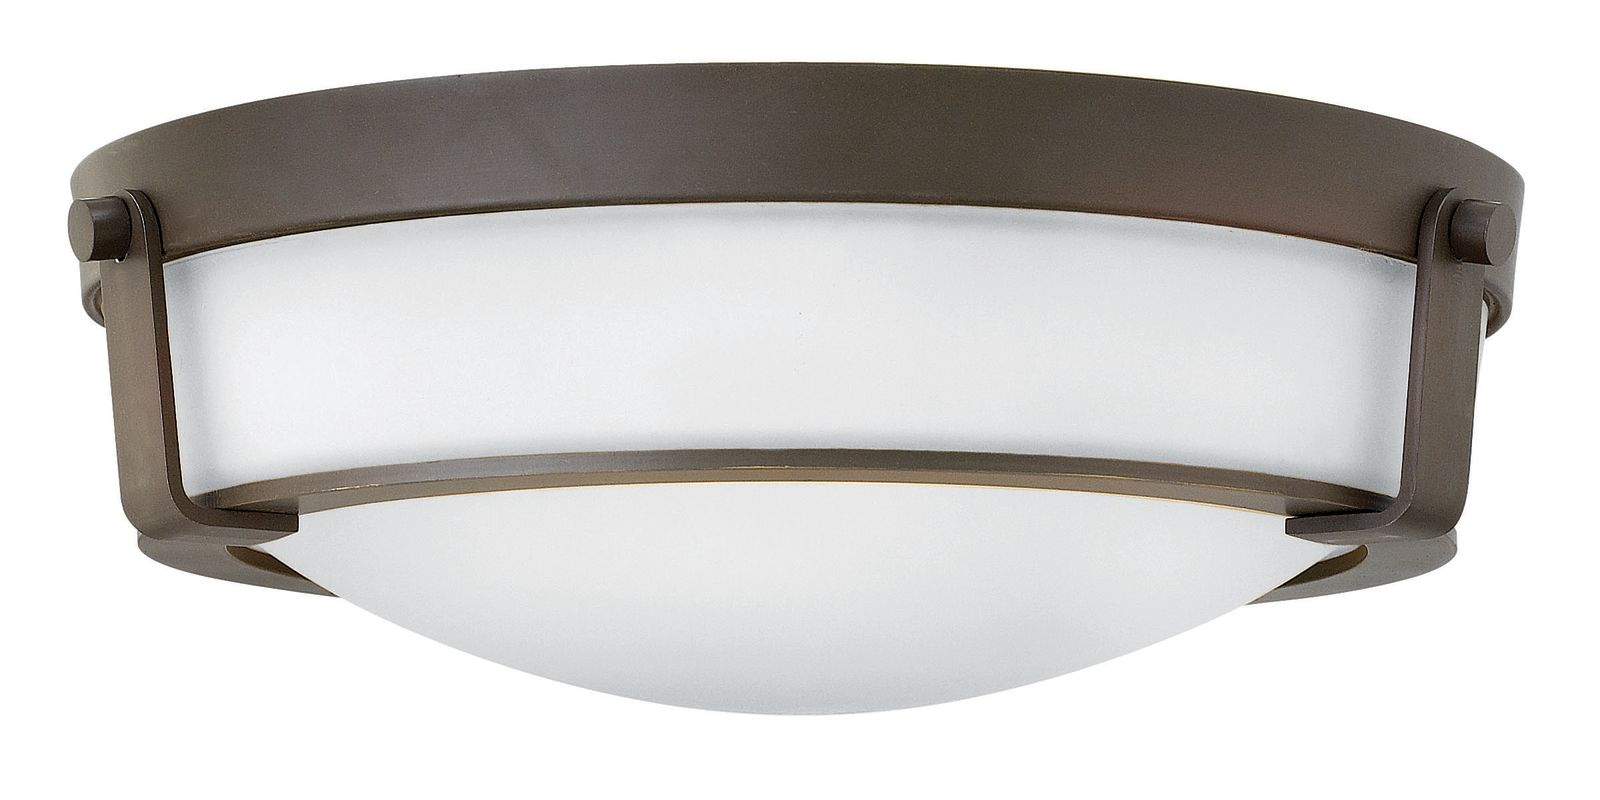 Hinkley Lighting 3225-GU24 3 Light Title 24 Fluorescent Flush Mount Sale $349.00 ITEM#: 2635212 MODEL# :3225OB-WH-GU24 UPC#: 640665322668 :